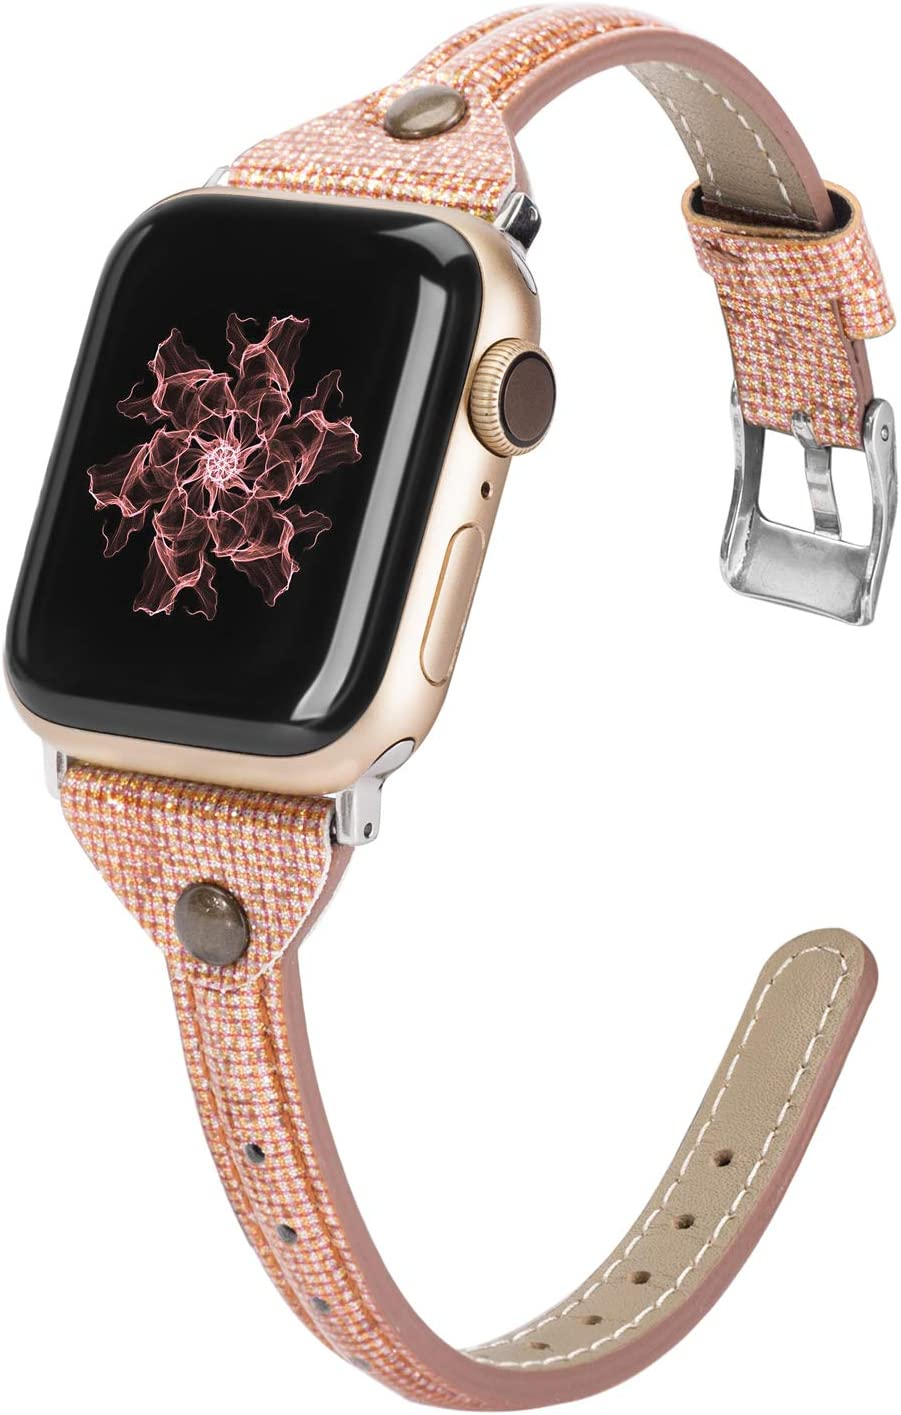 Wearlizer Thin Leather Compatible with Apple Watch Bands 38mm 40mm for iWatch SE Womens Slim Smooth Bling Strap Leisure Cute Glitter Rivet Shiny Wristband (Silver Clasp) Series 6 5 4 3 2 1-Deep Gold